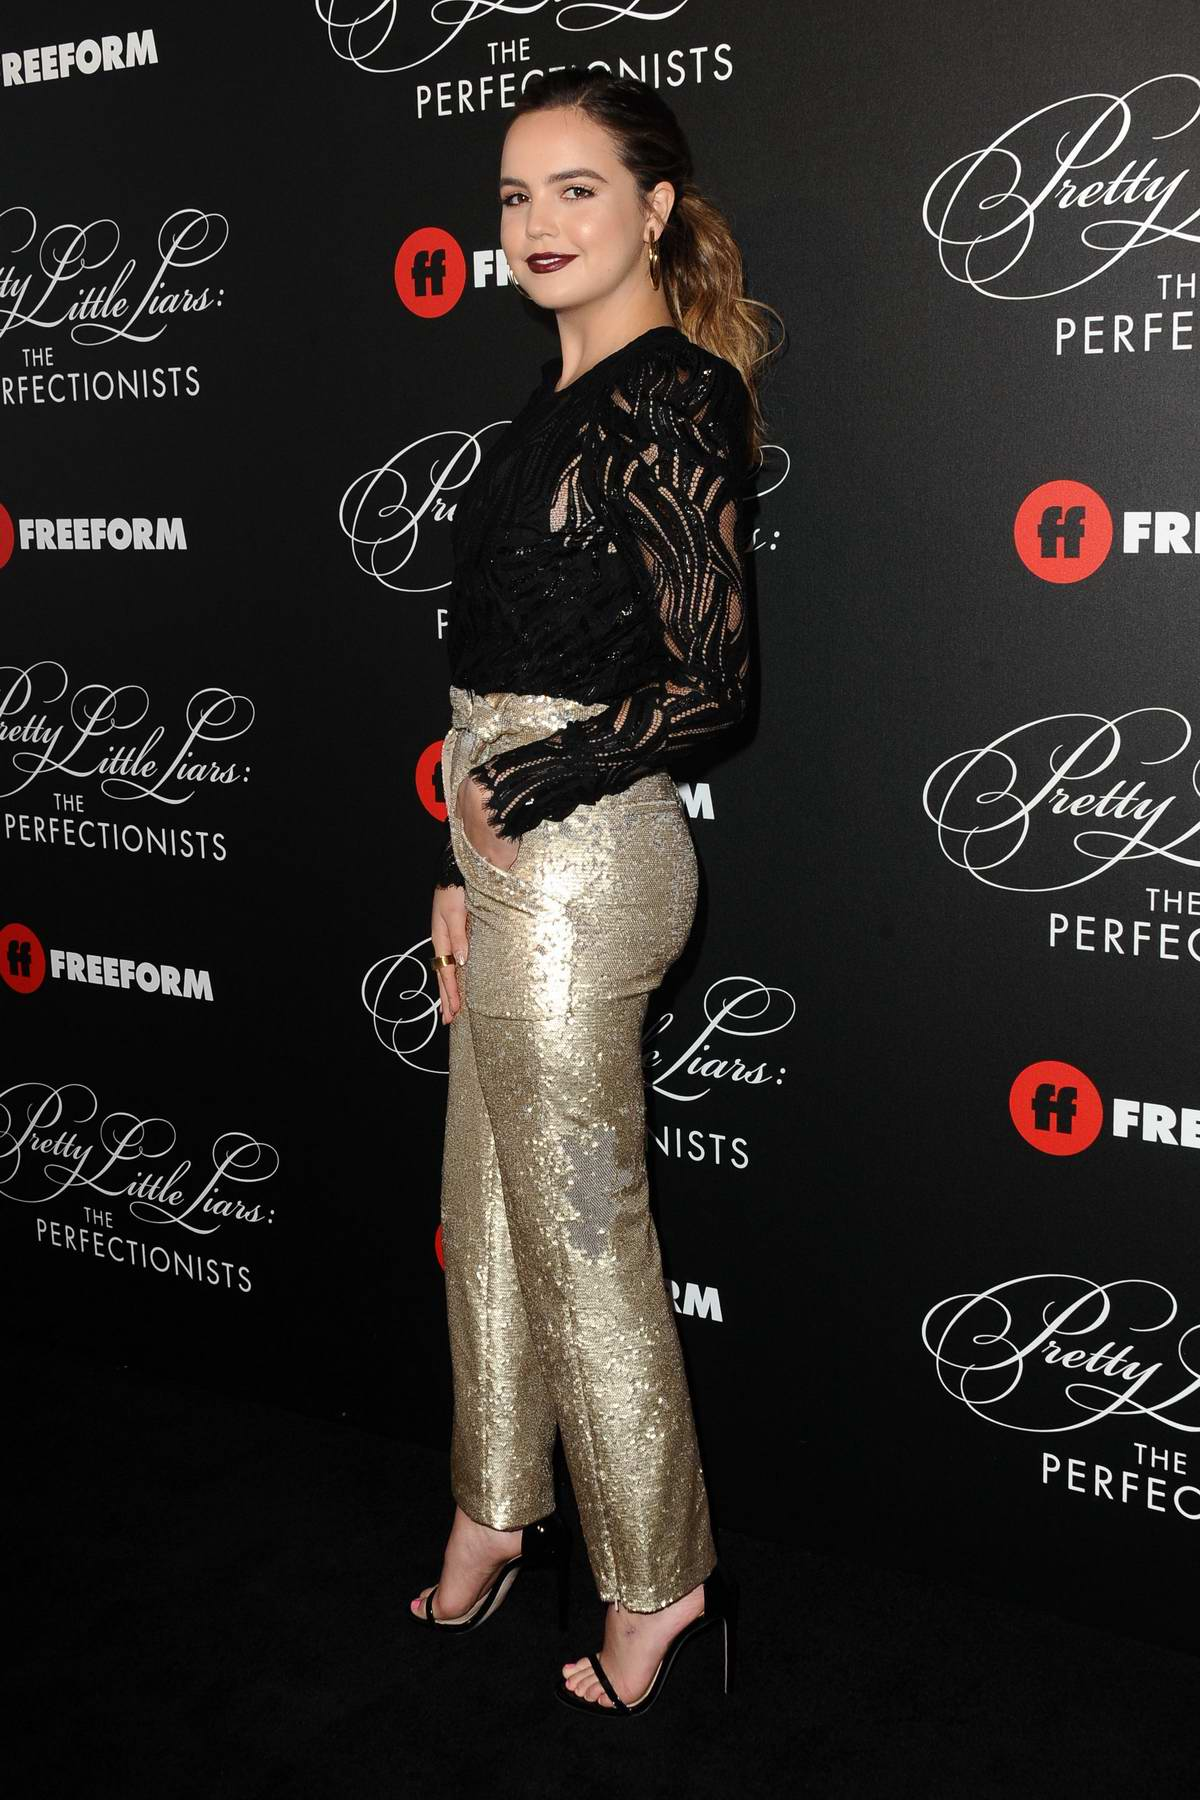 Bailee Madison attends 'Pretty Little Liars: The Perfectionists' premiere at Hollywood Athletic Club in Hollywood, California